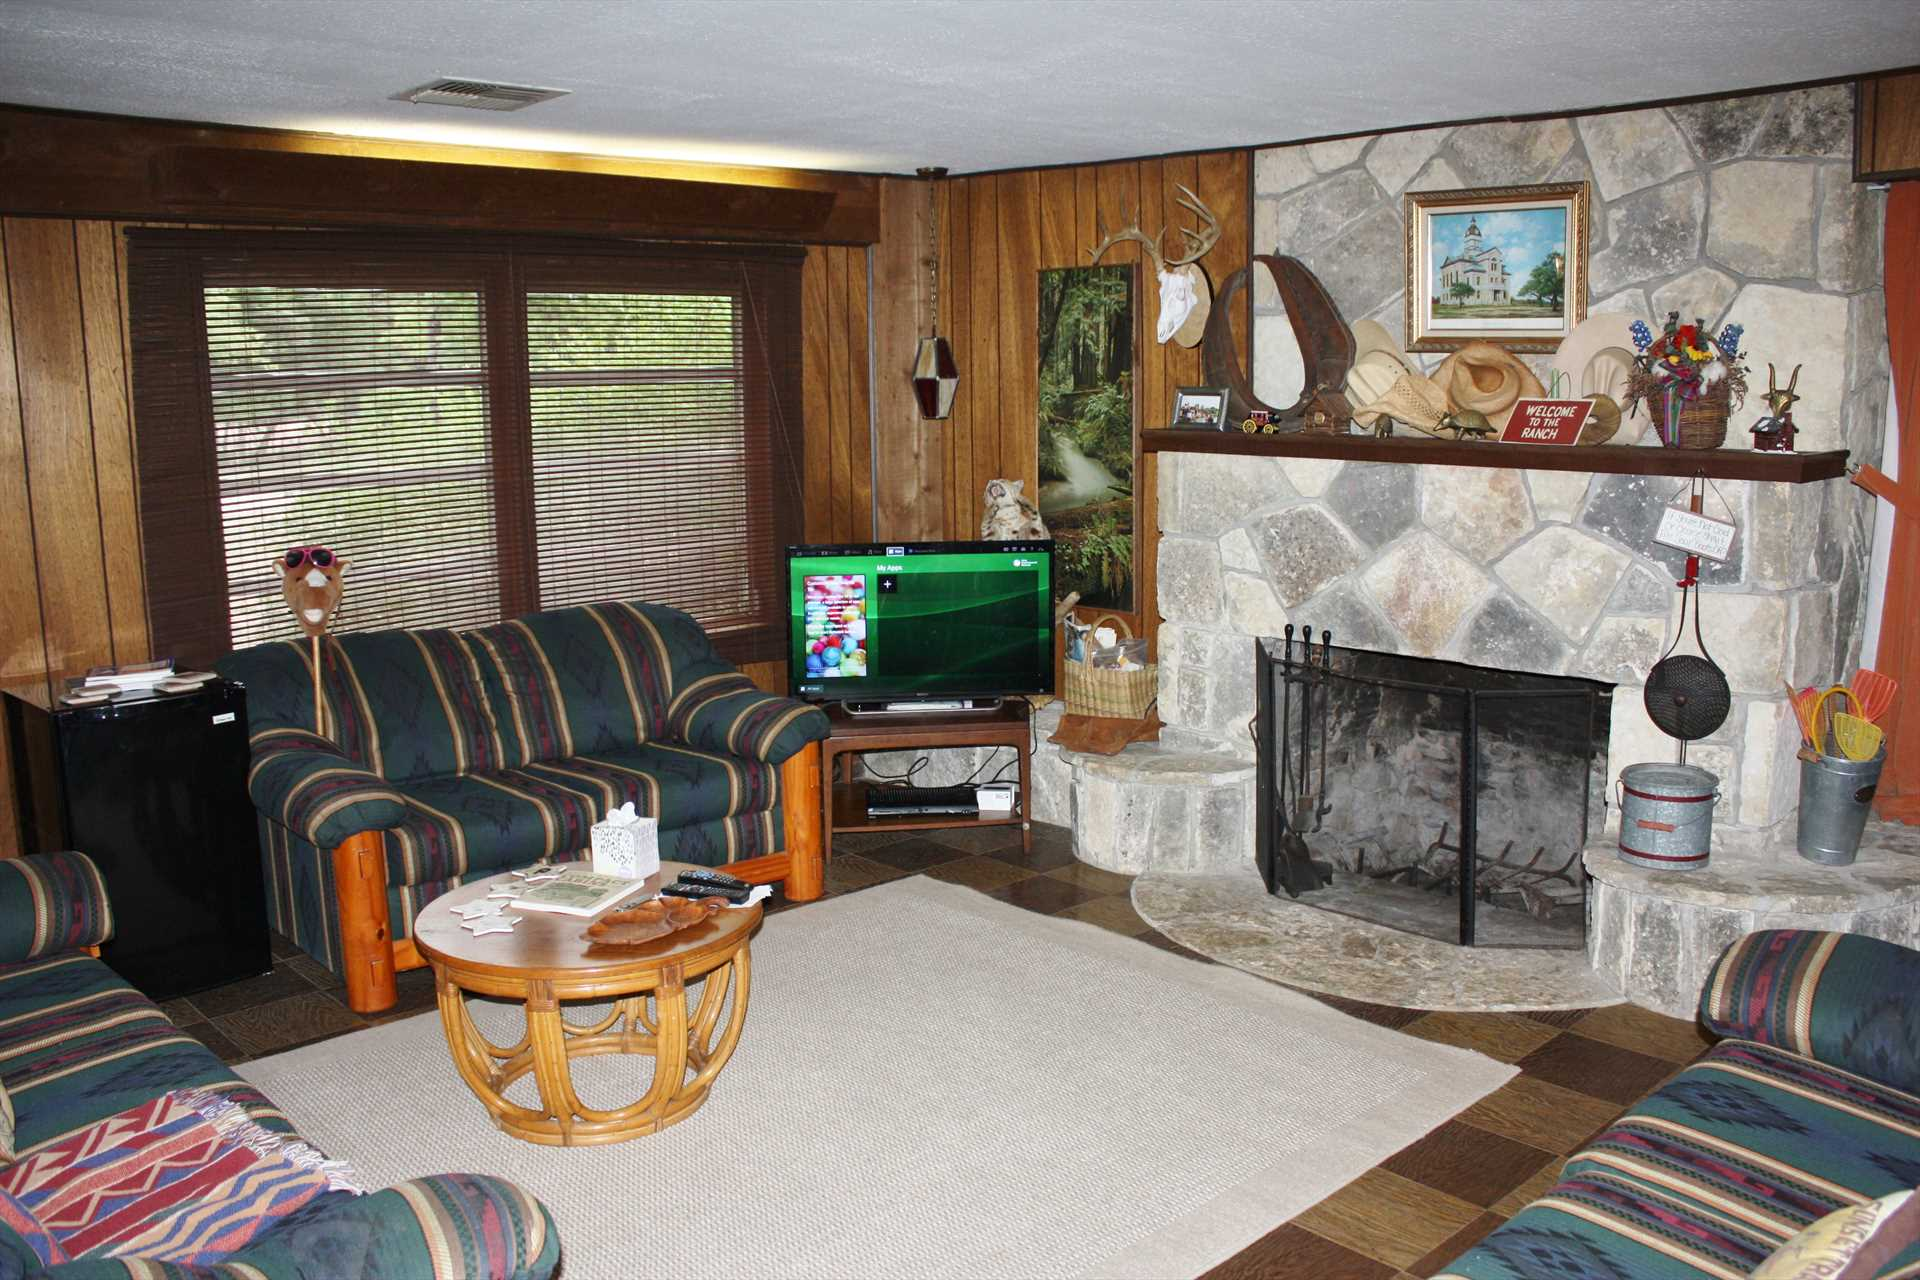 Satellite TV, Wifi, and a big fireplace make the living area of the main cabin a warm and wonderful centerpiece for your Hill Country holiday!